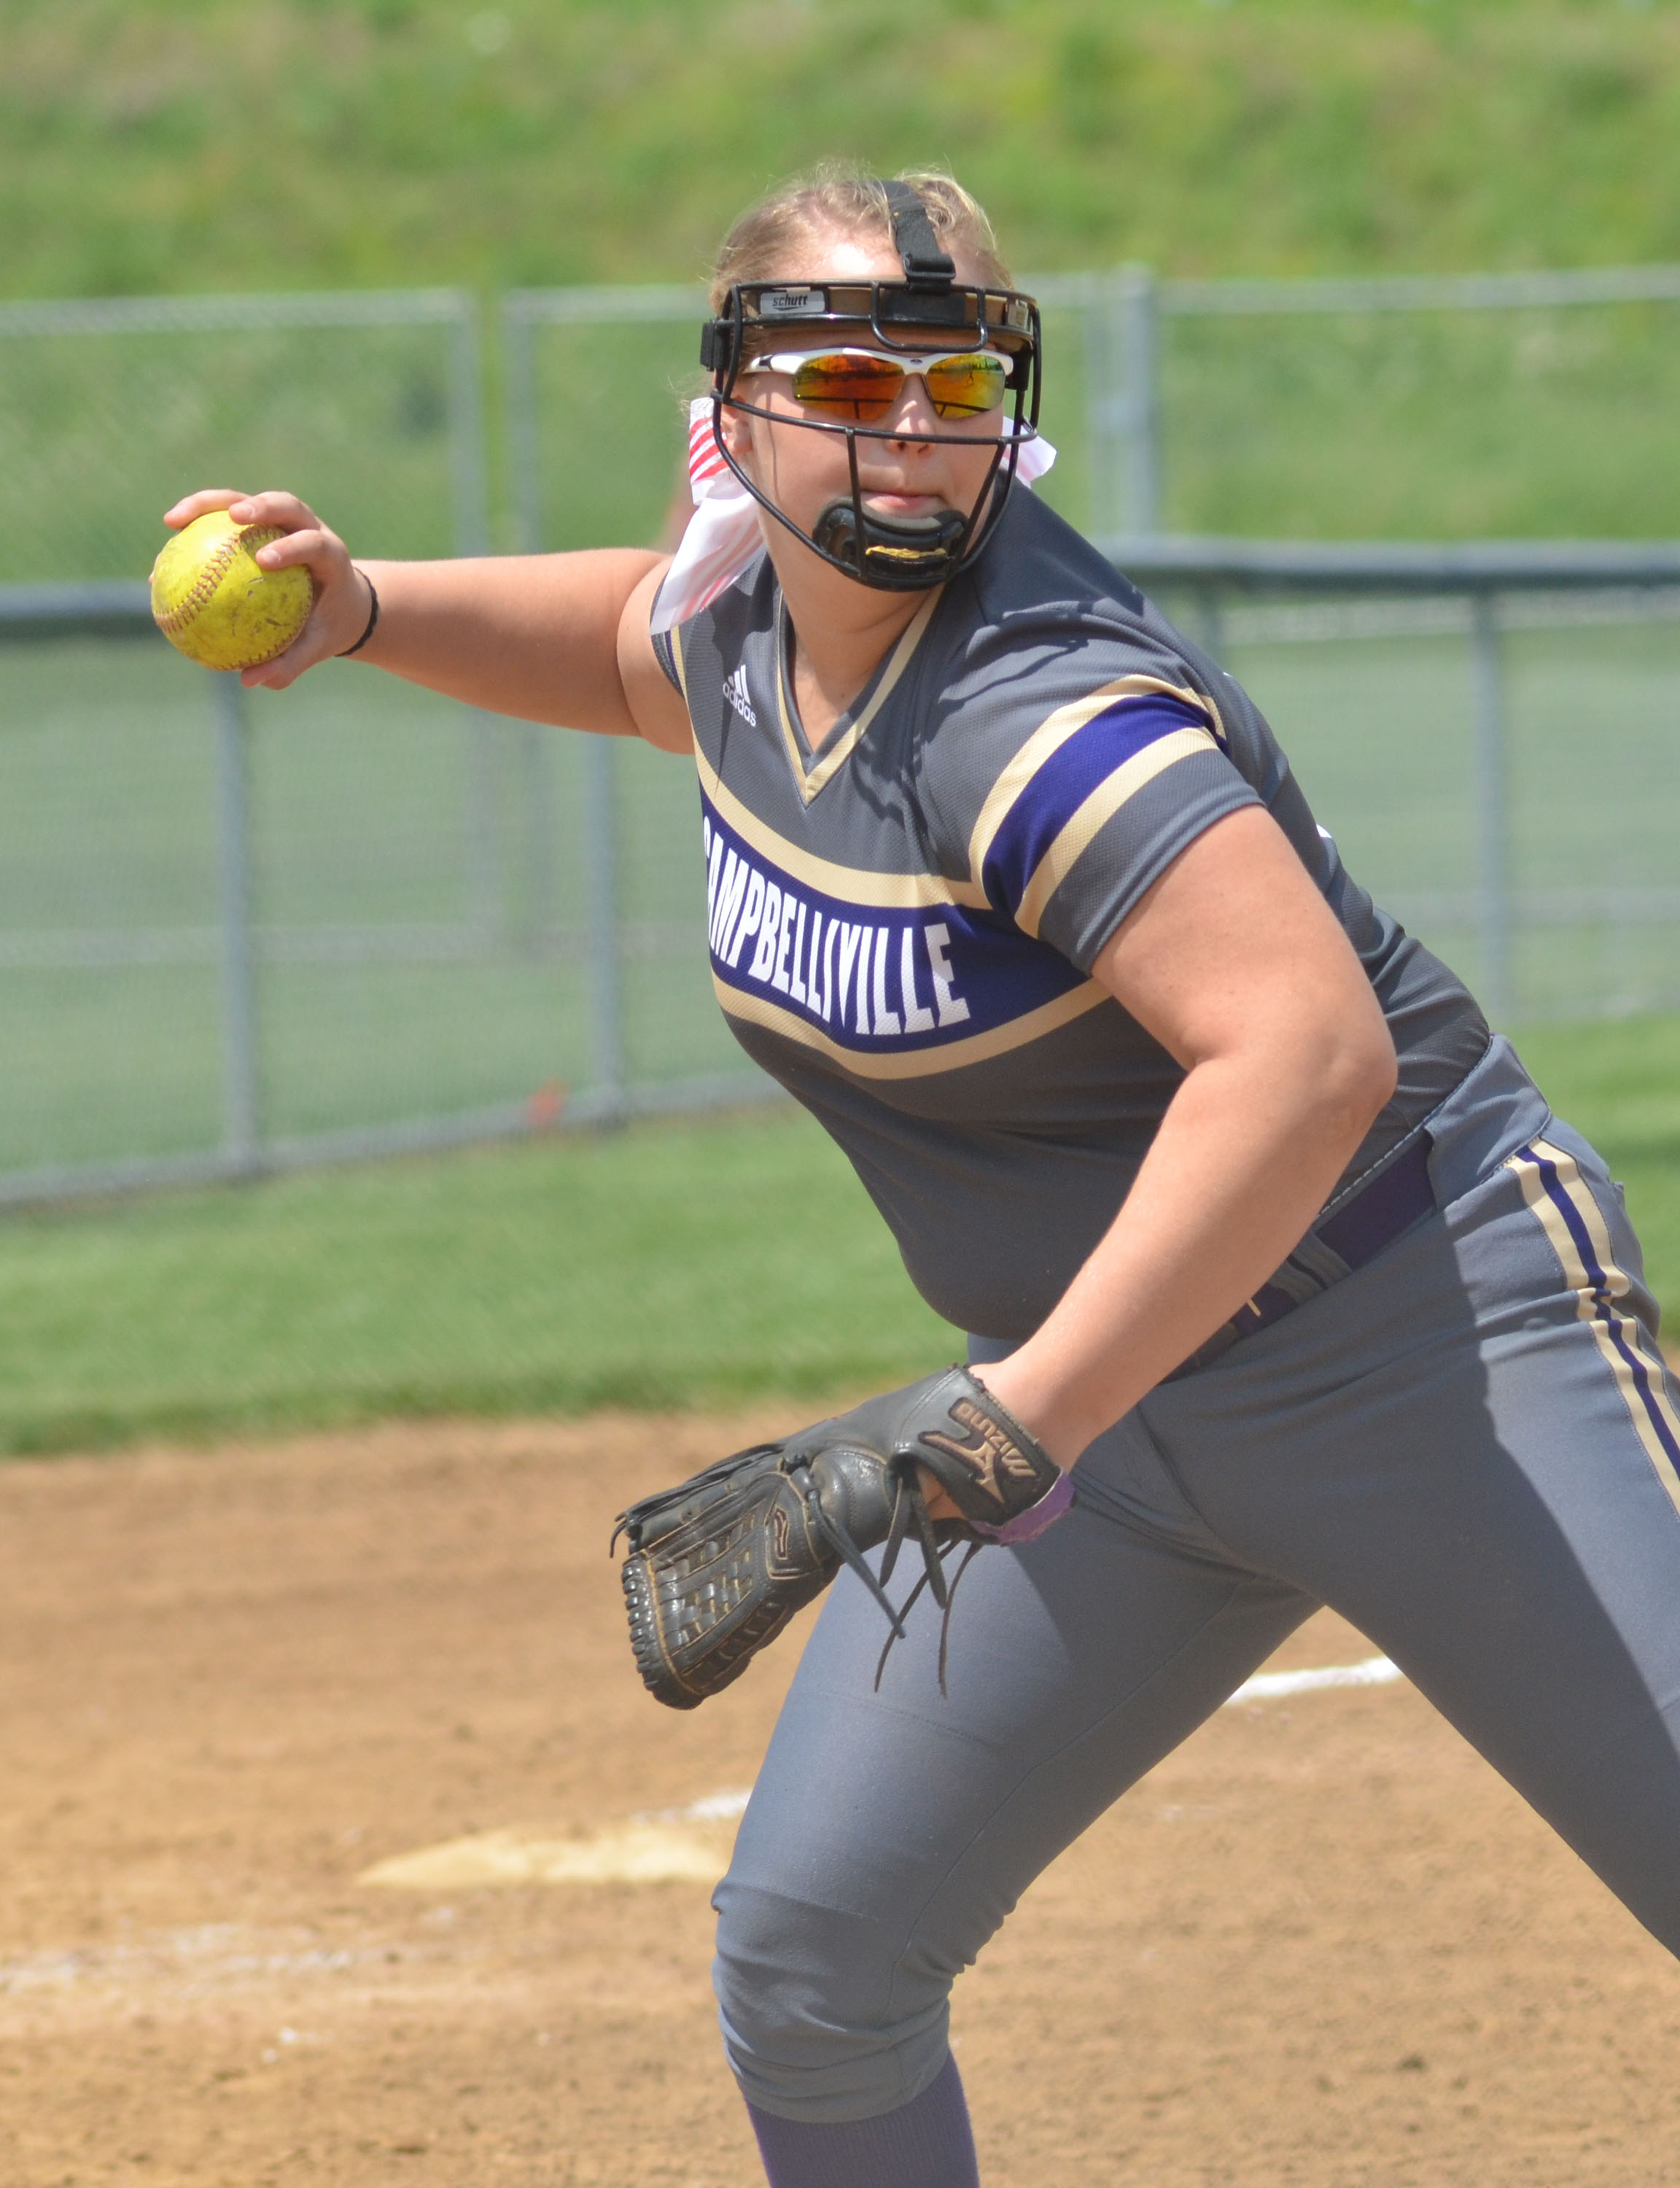 Campbellsville High School senior Brenna Wethington will continue her academic and softball career at Lindsey Wilson College this fall. She will soon begin her senior season with the CHS softball team.